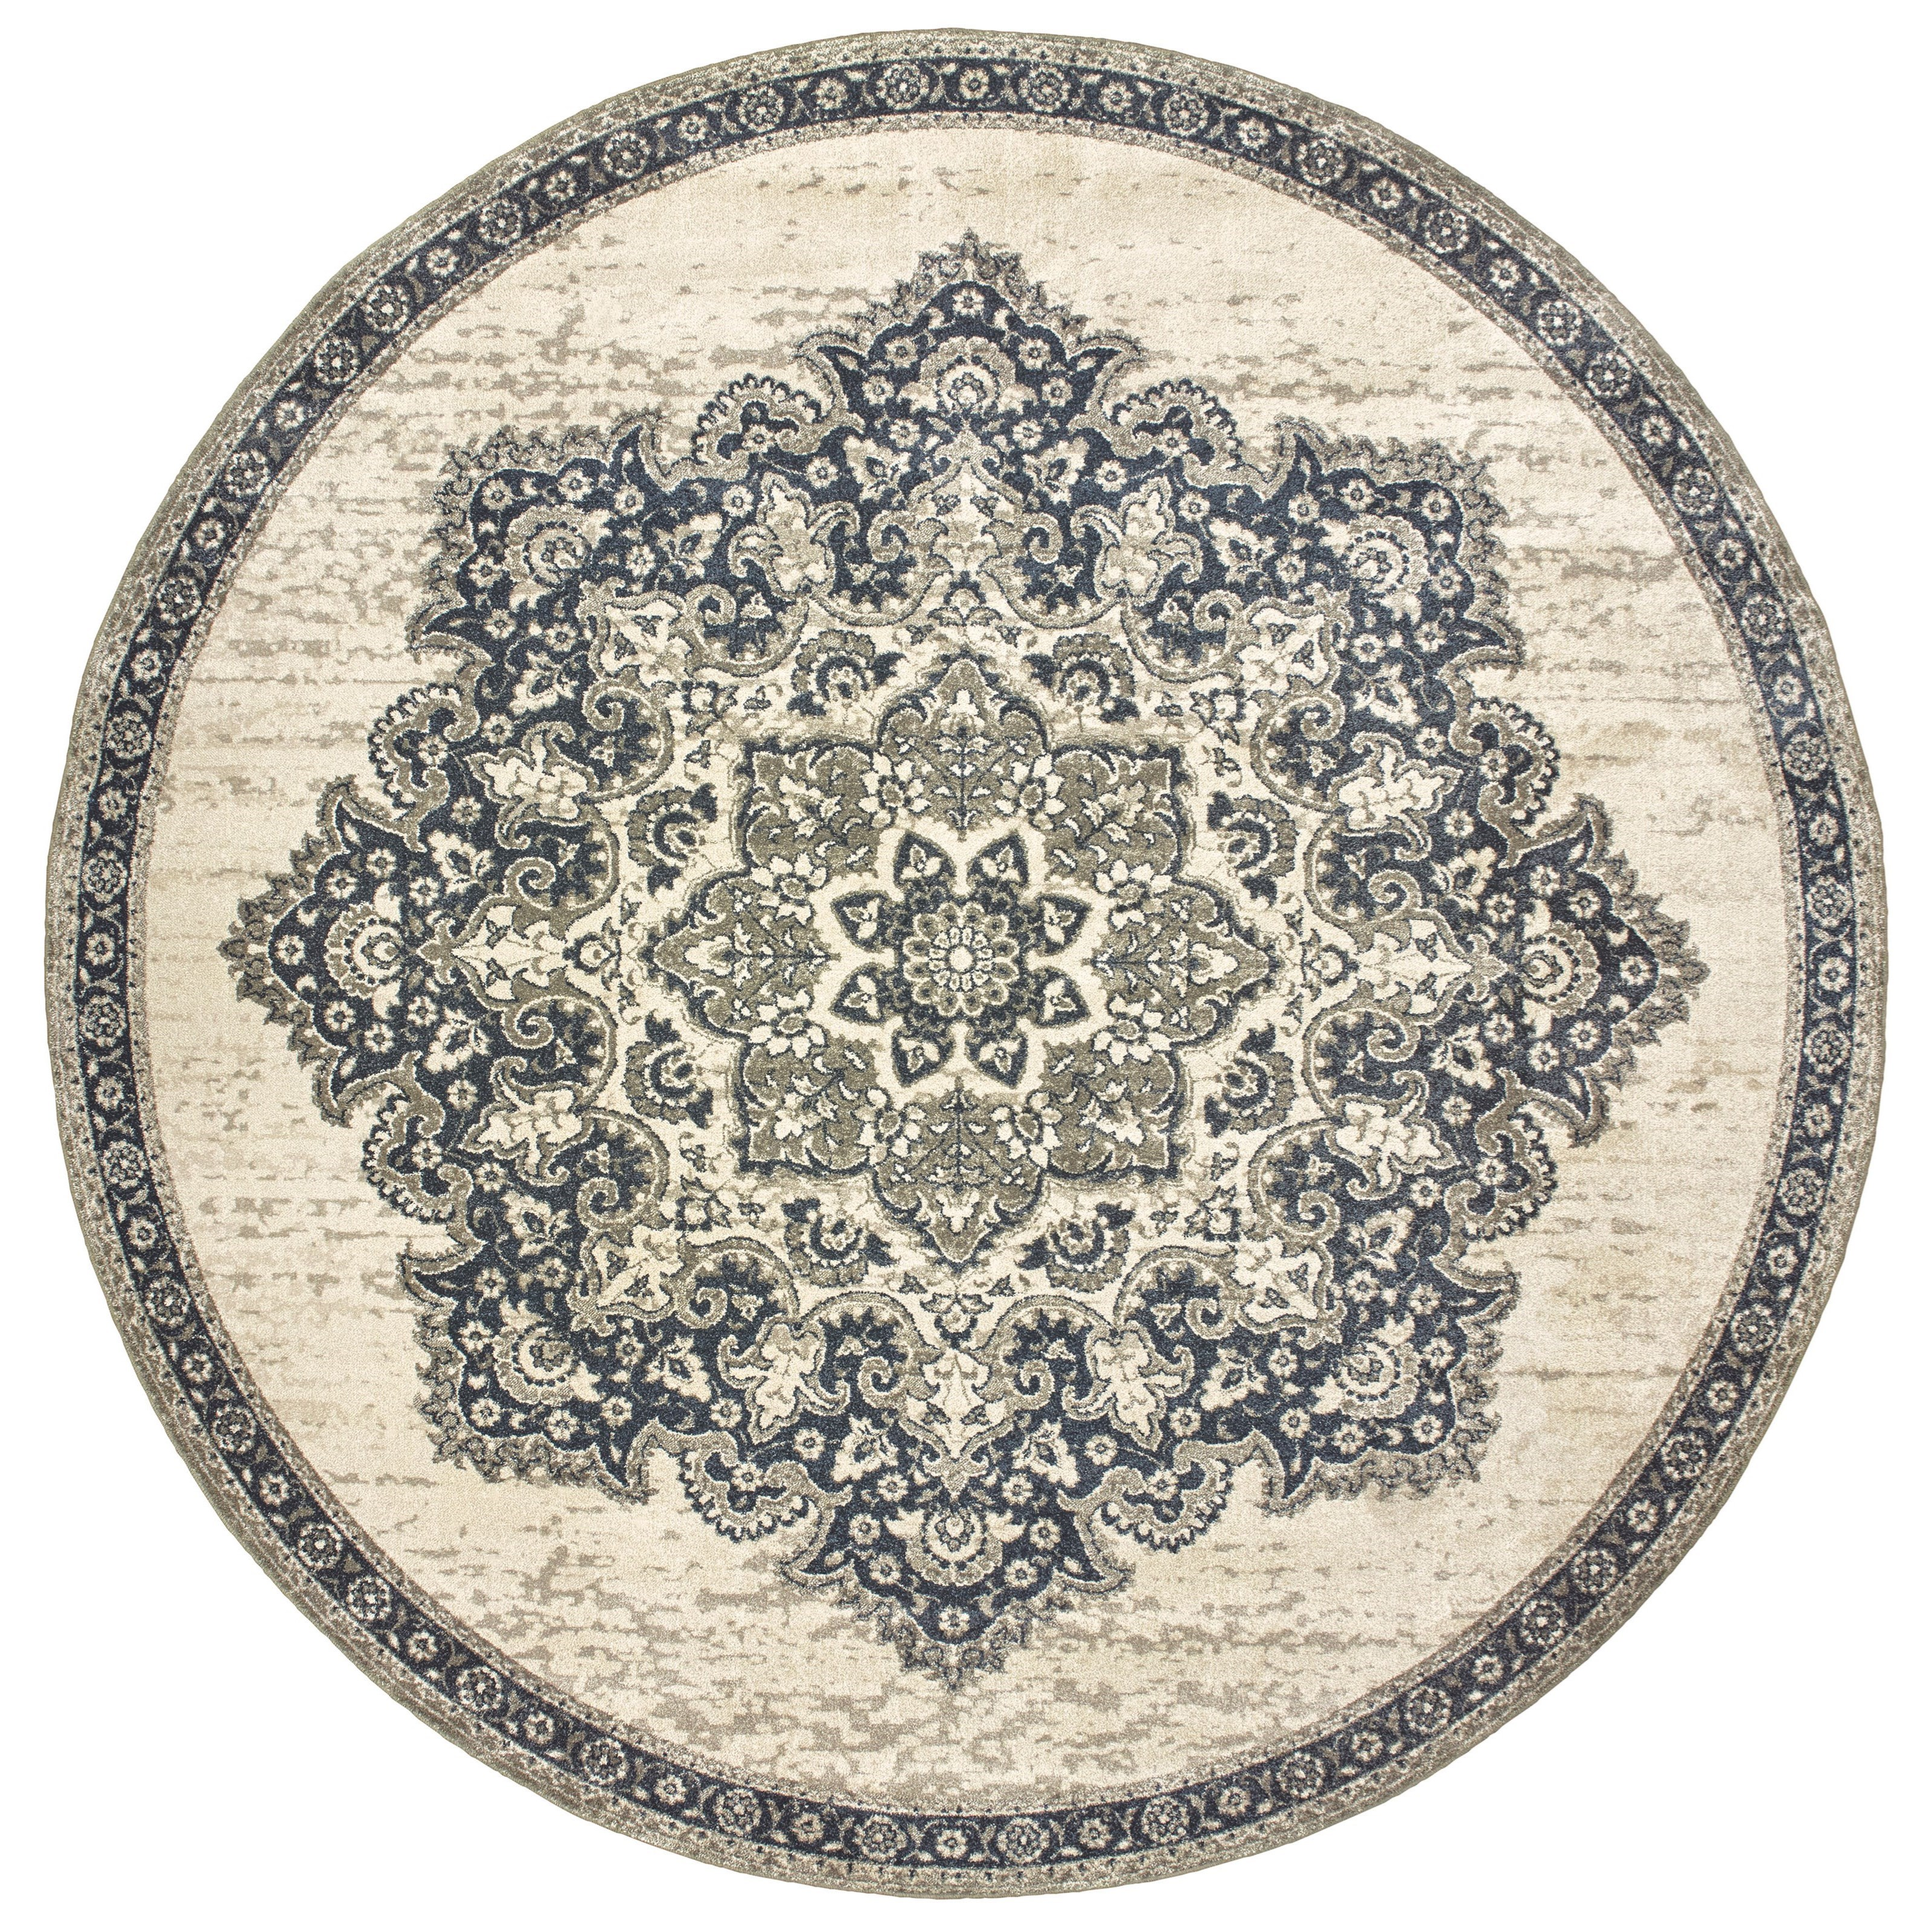 "Richmond 7'10"" Round Rug by Oriental Weavers at Steger's Furniture"